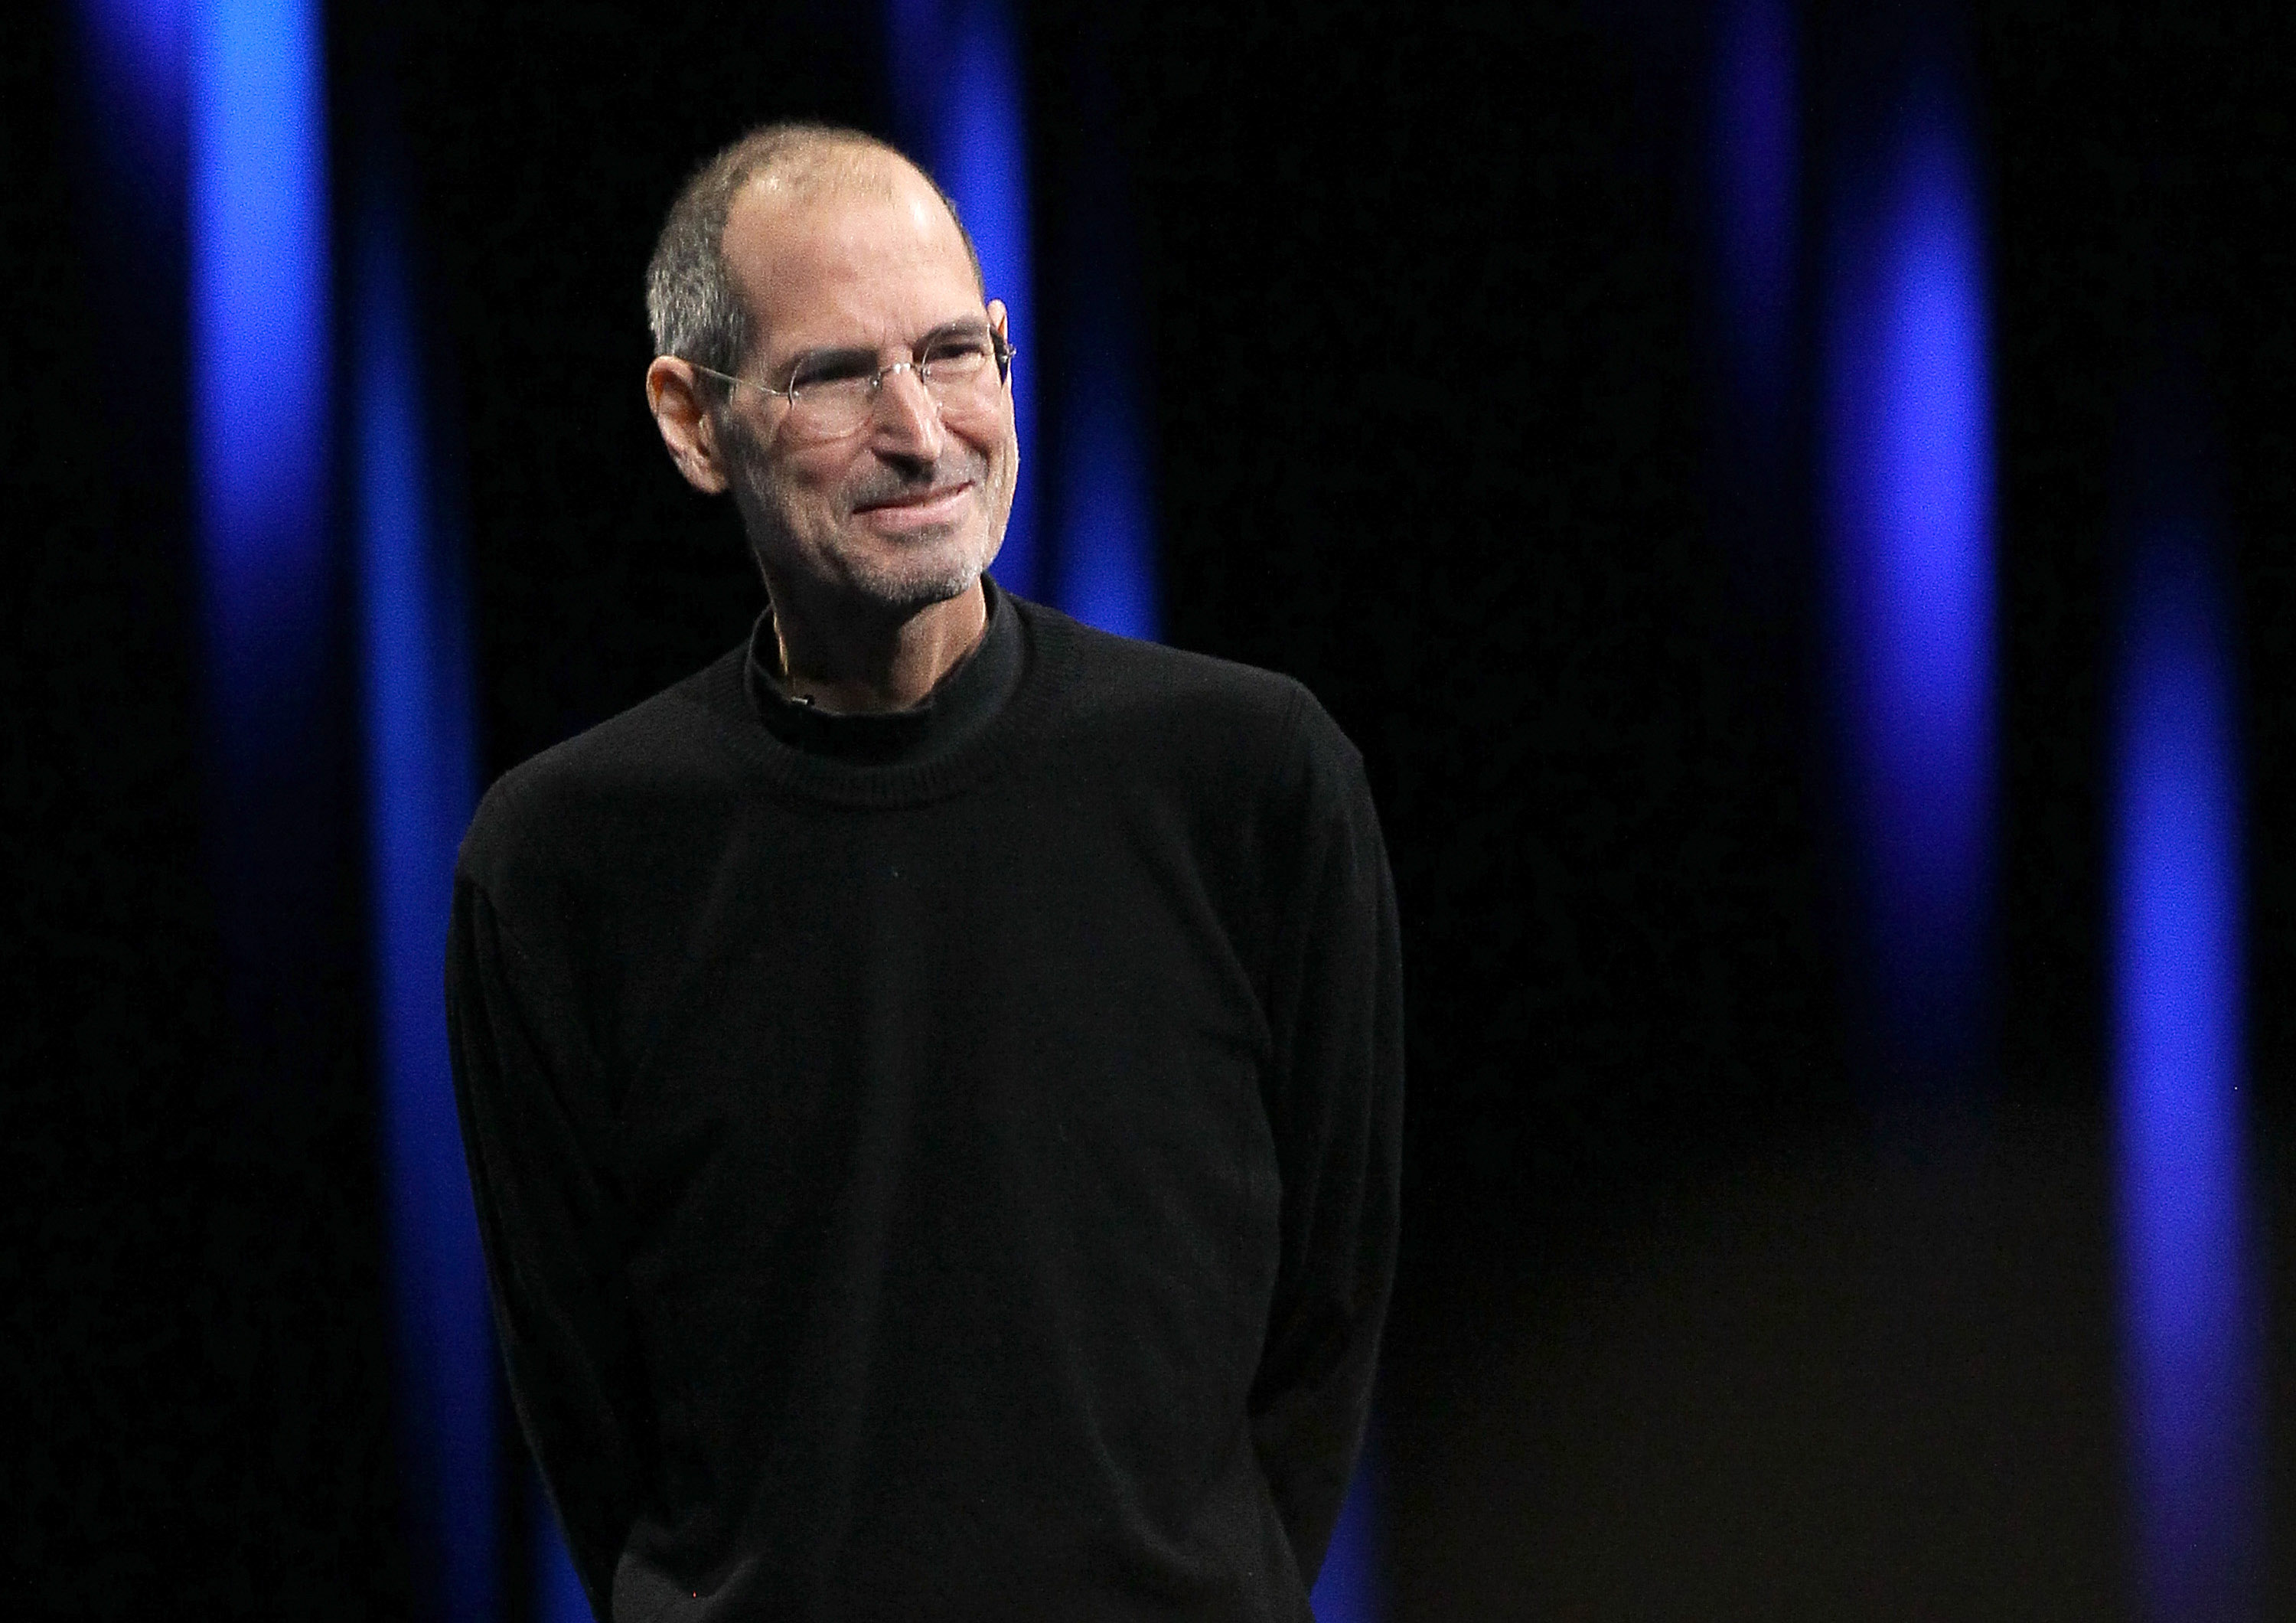 Steve Jobs delivers the keynote address at the 2011 Apple World Wide Developers Conference on June 6, 2011 in San Francisco, California.